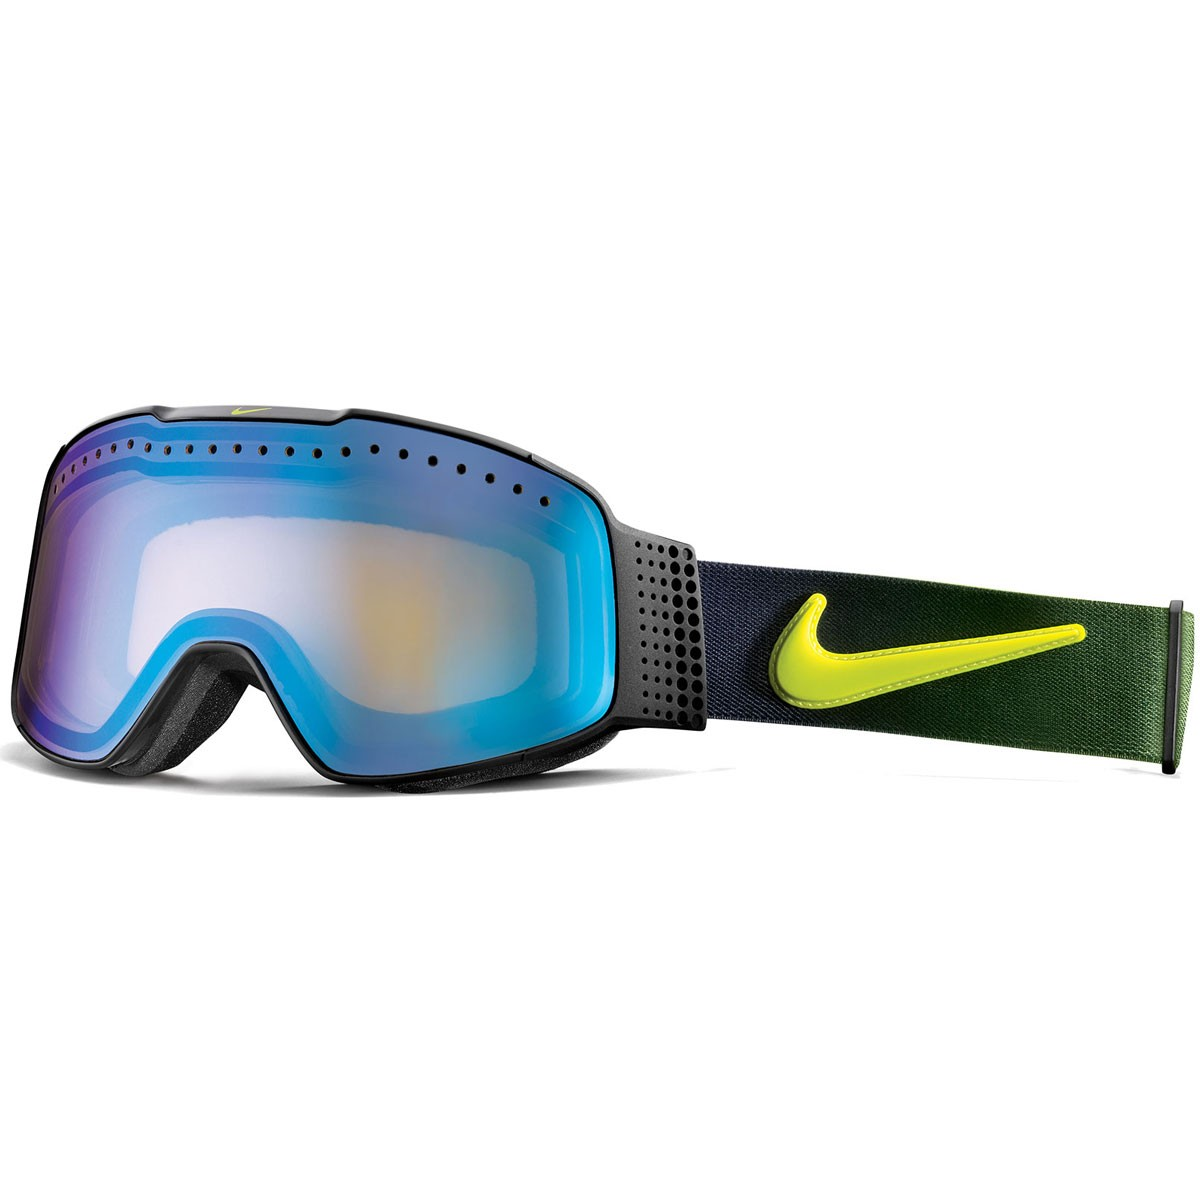 Nike Fade Snowboard Goggles - Black/Cyber Fade with Yellow Blue Ion